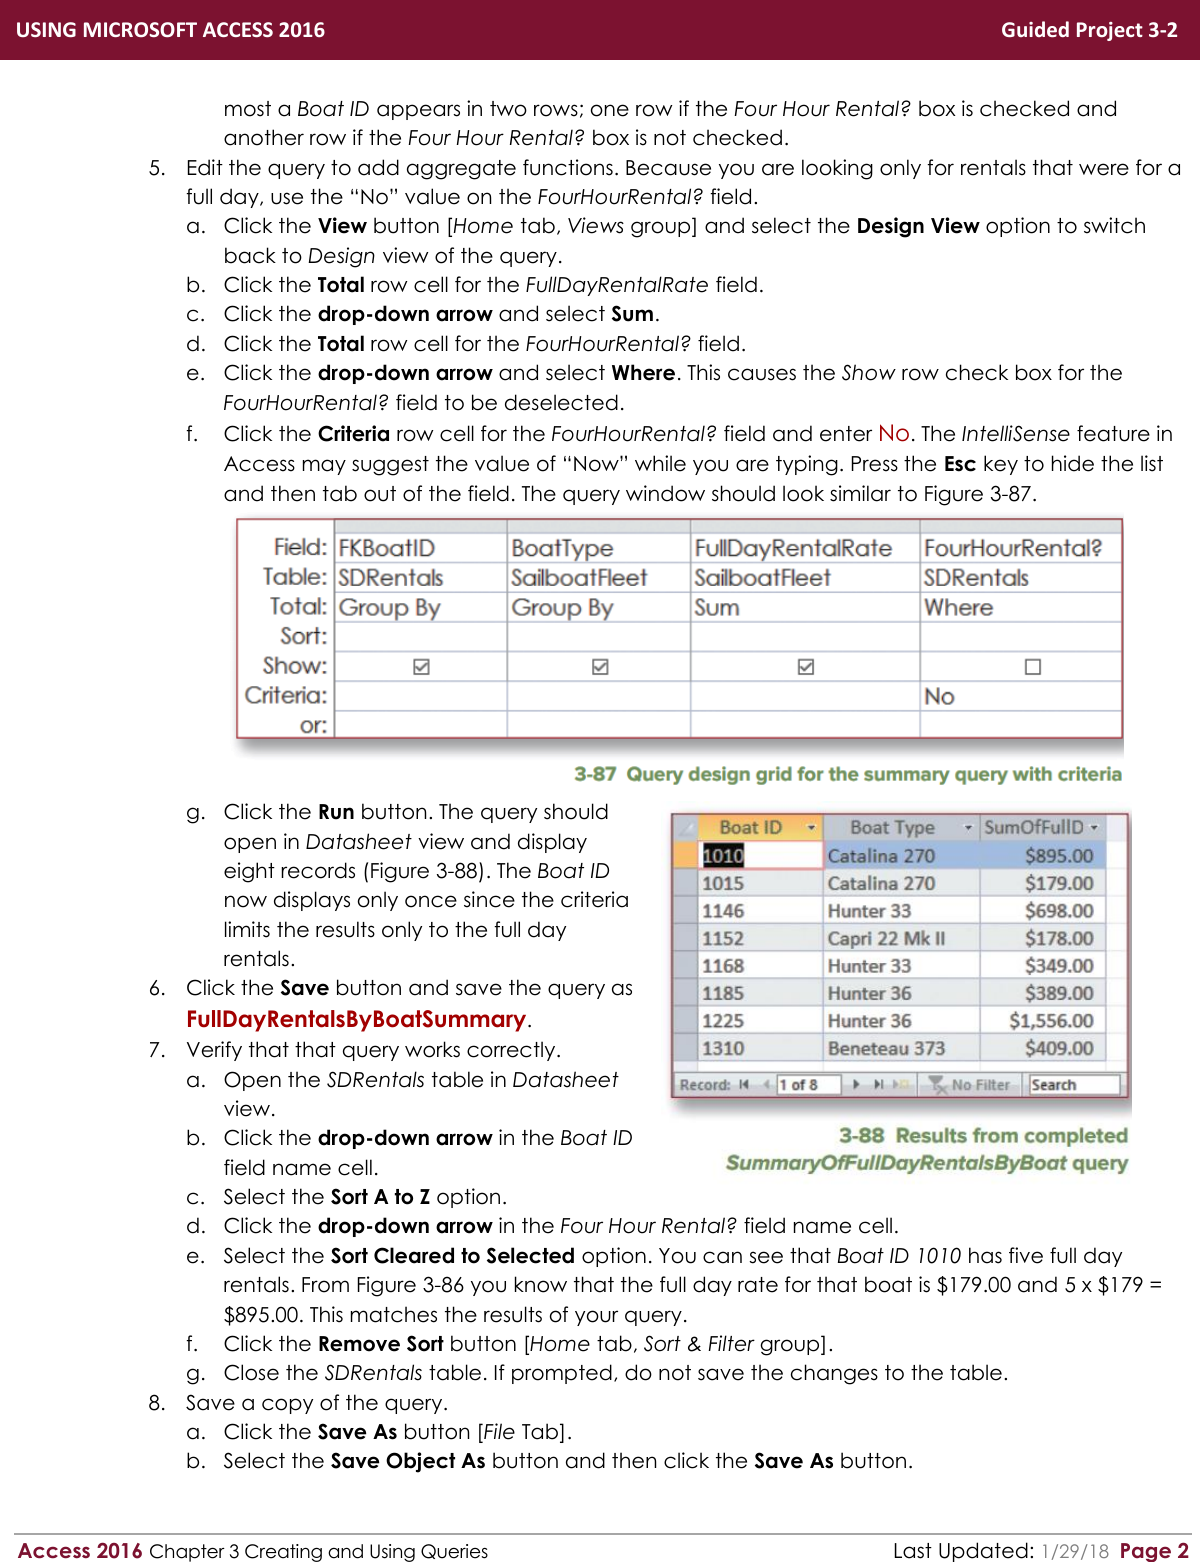 AC2016 Guided Project 3 2 instructions